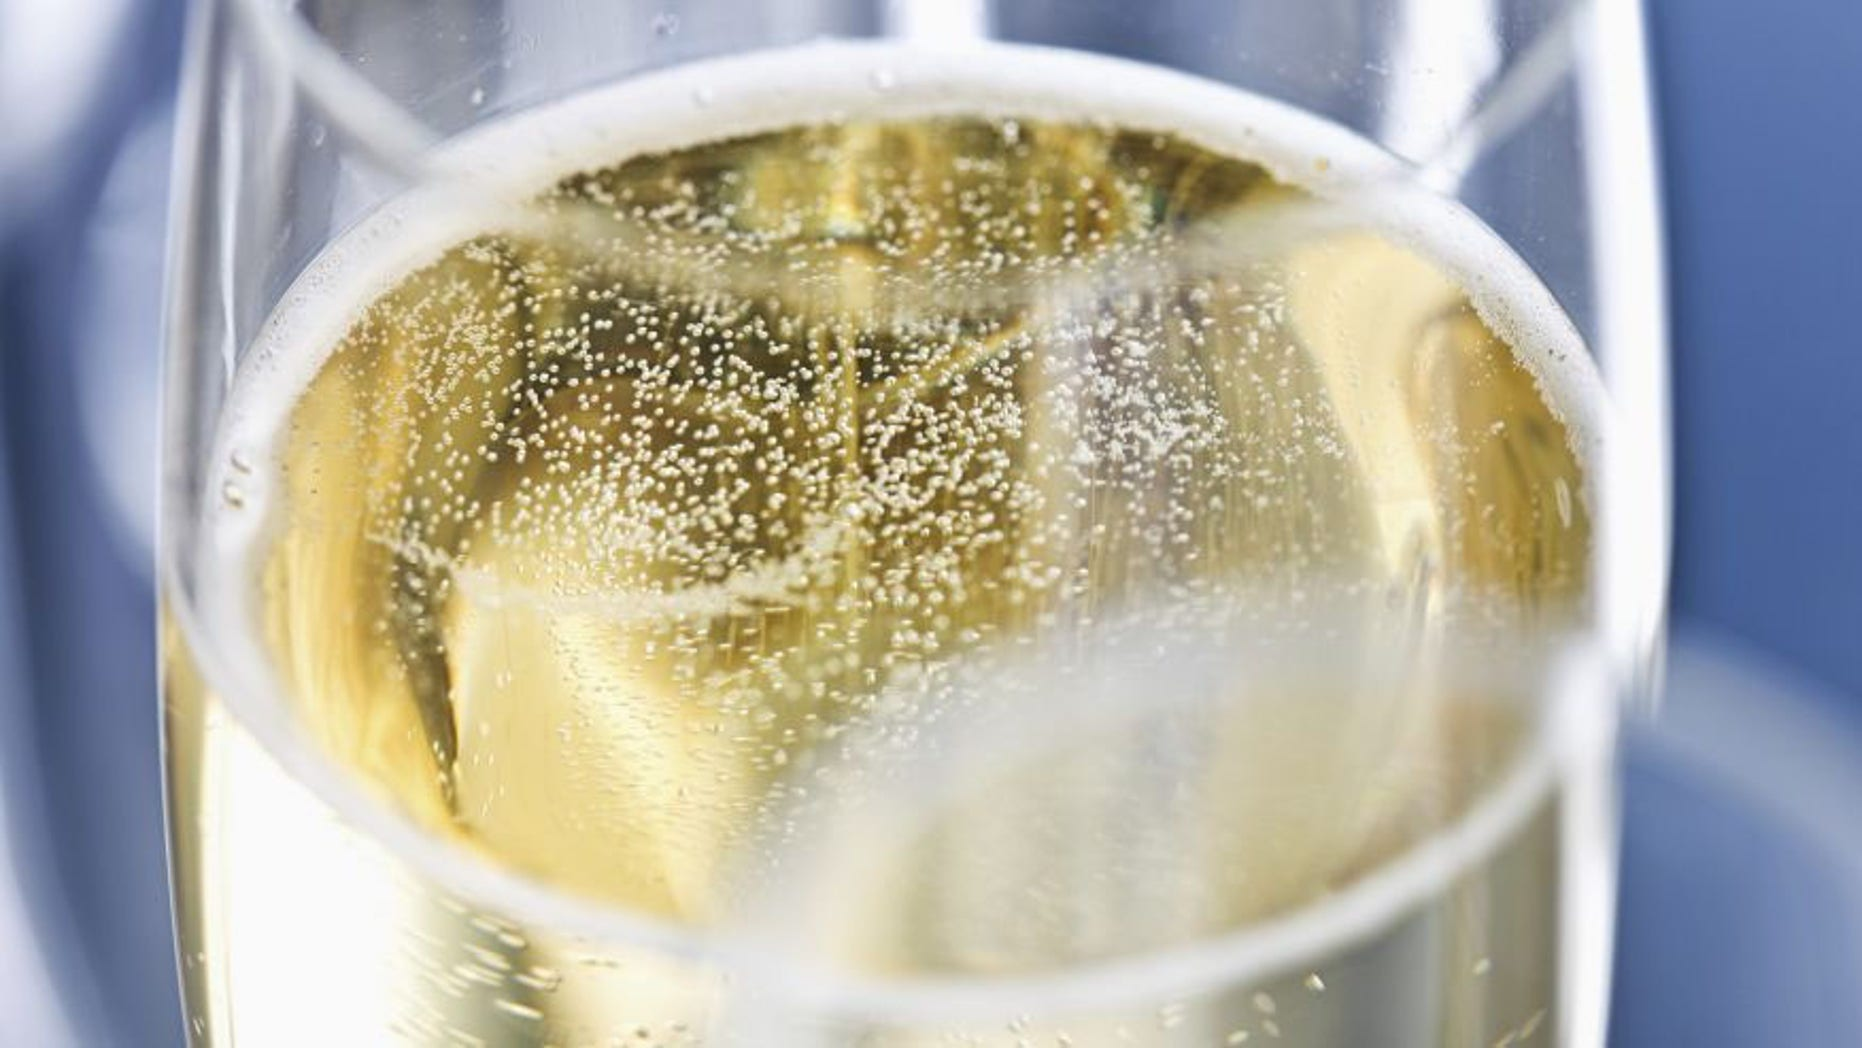 Prosecco sales in Italy increased by 27 percent, and exports to the U.S. rose by 38 percent.